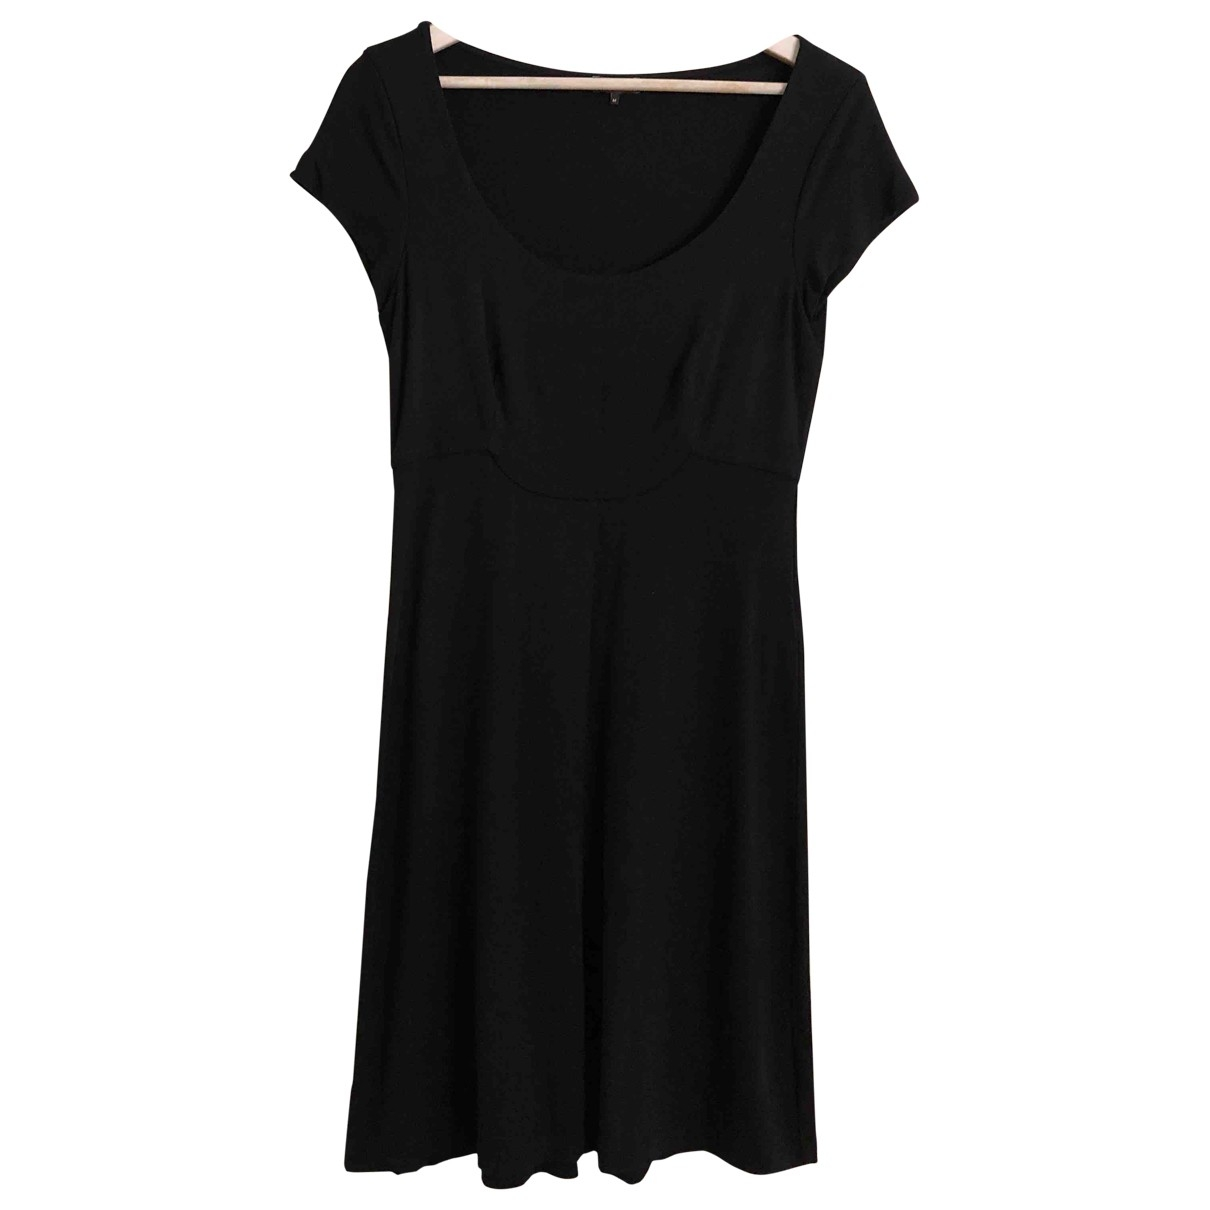 Maliparmi \N Black dress for Women M International